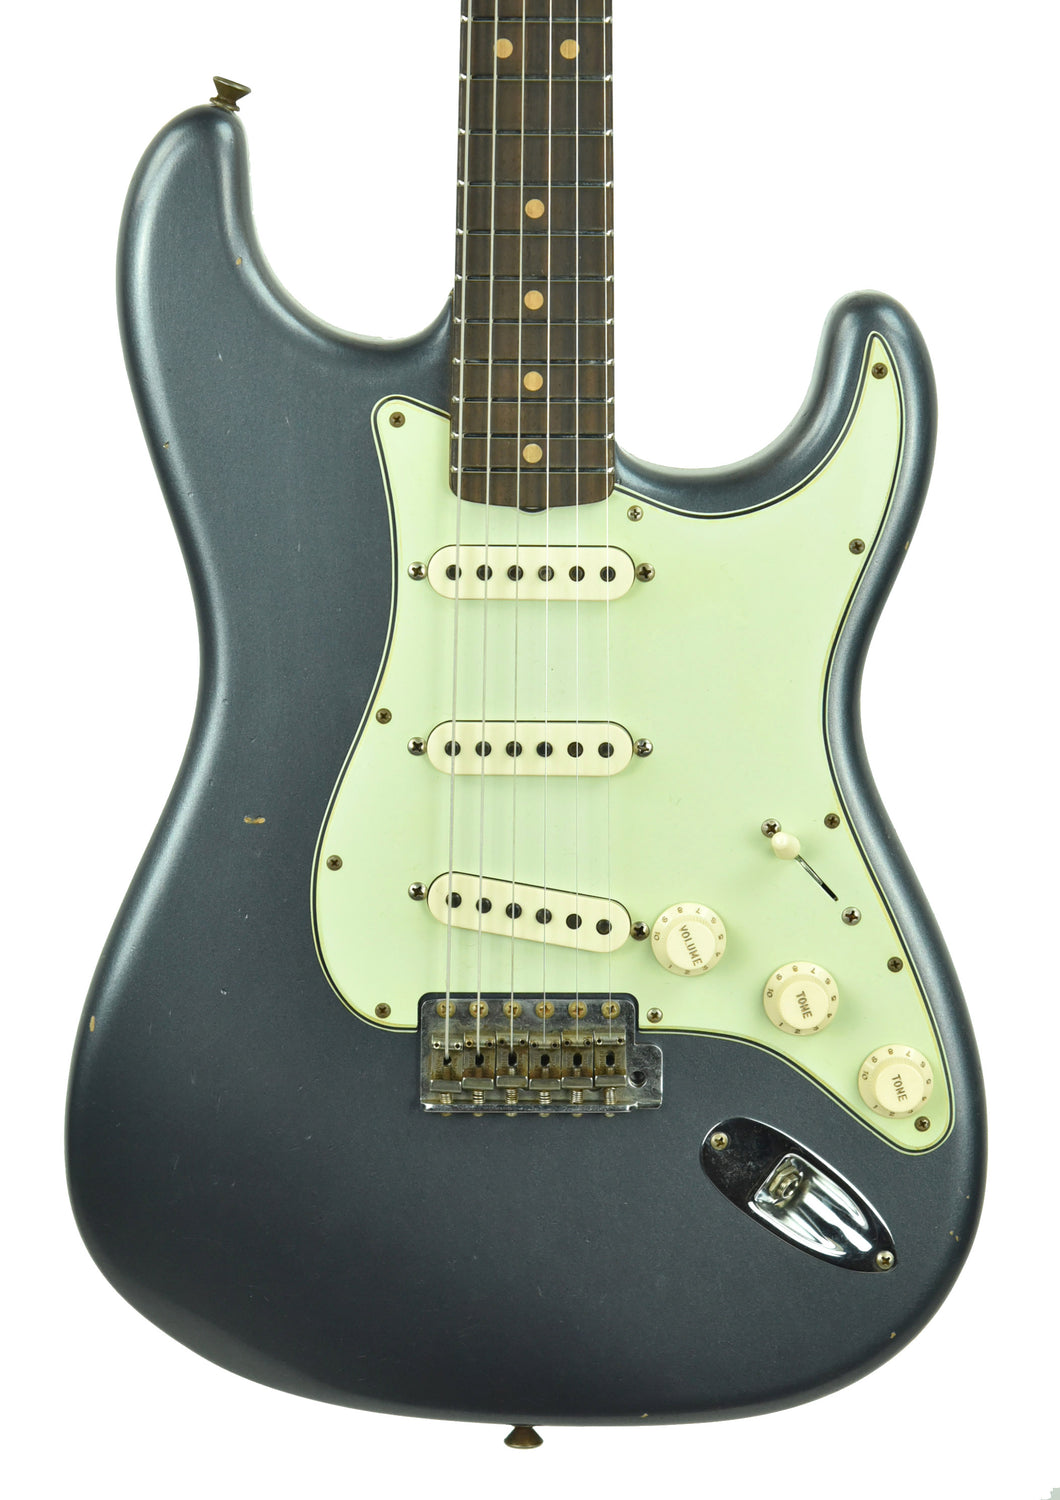 Fender Custom Shop 63 Stratocaster Journeyman Relic in Charcoal Frost Metallic R105205